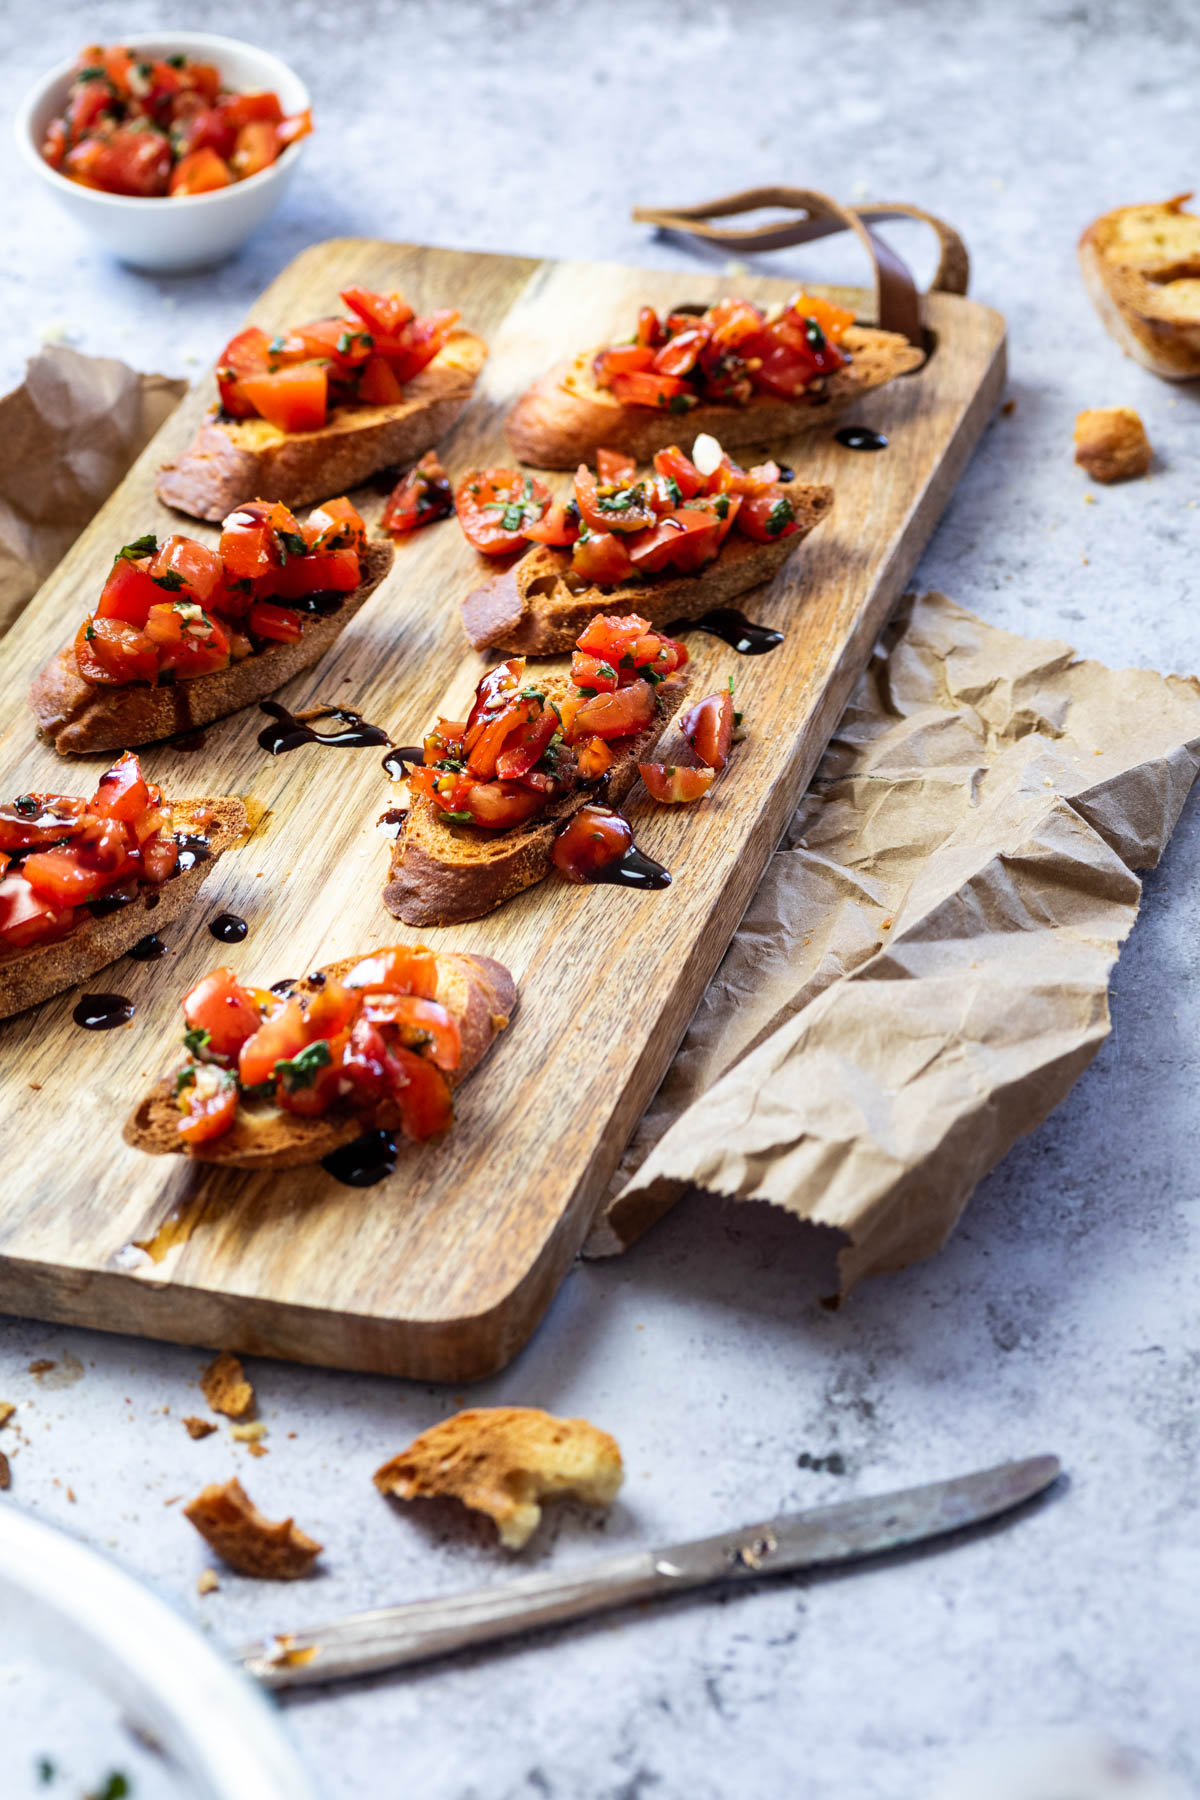 Tomato Bruschetta on Crostinis served on a cutting board with balsamic glaze drizzles.